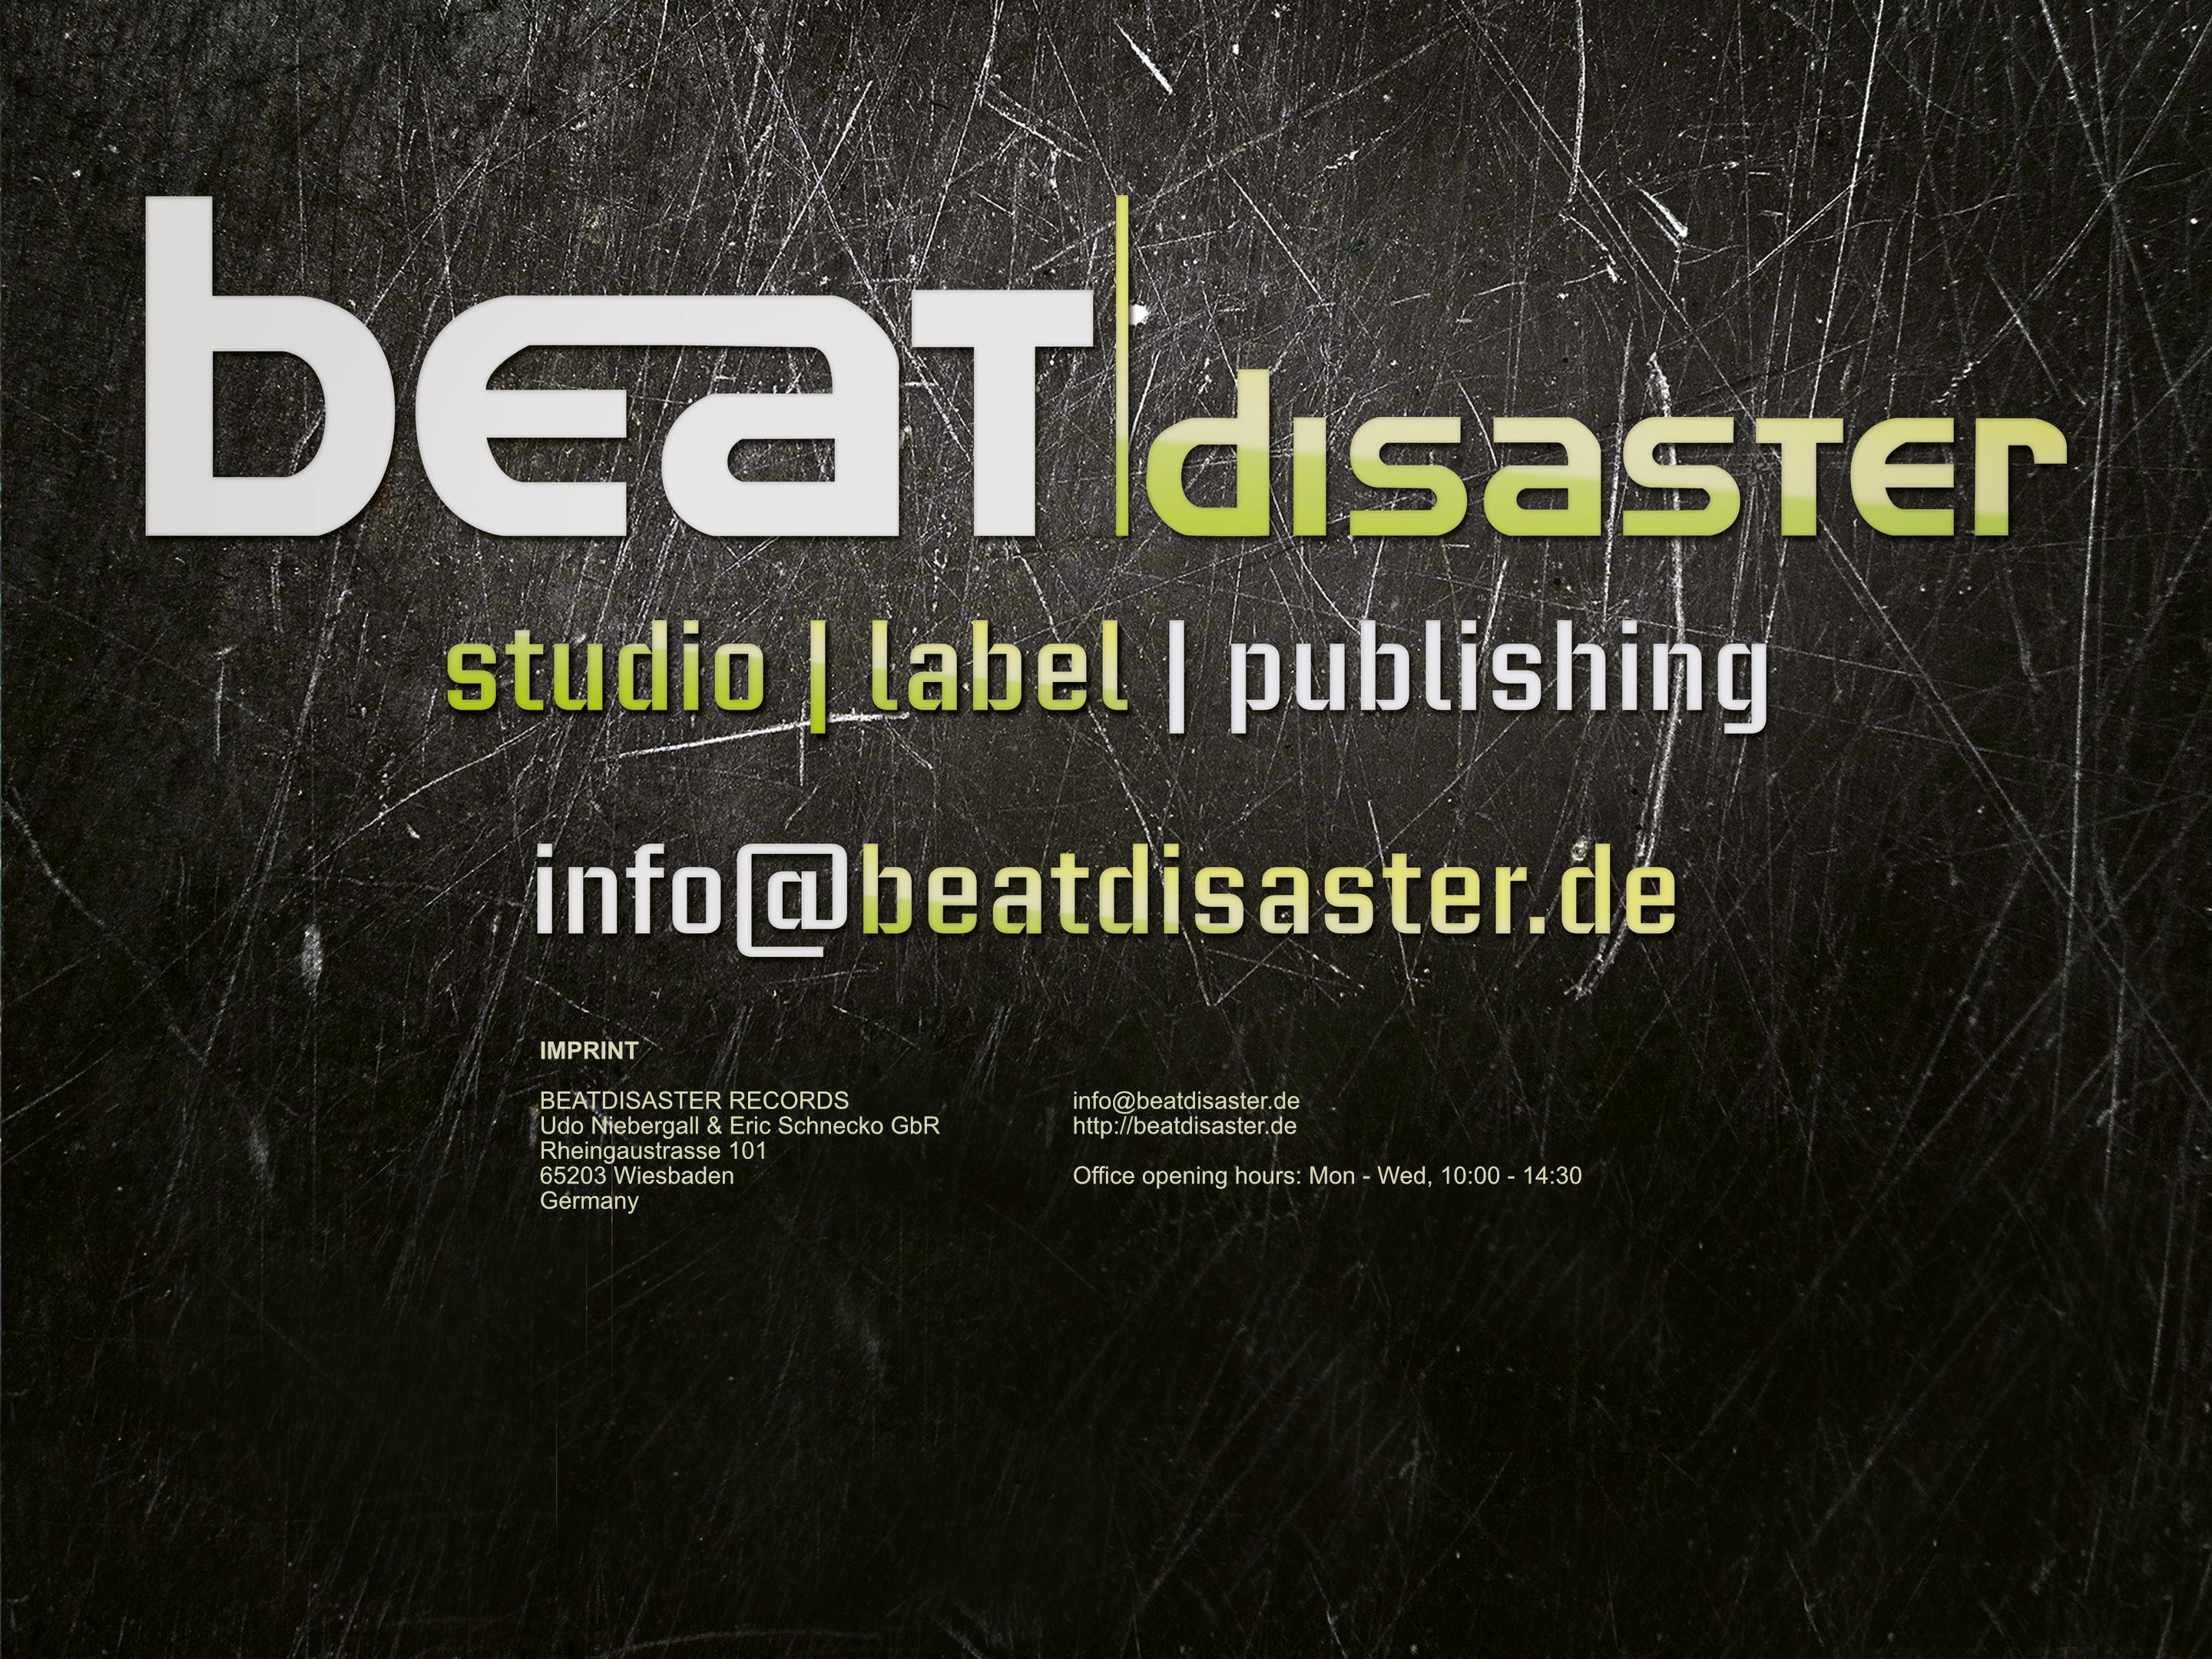 Beatdisaster Records